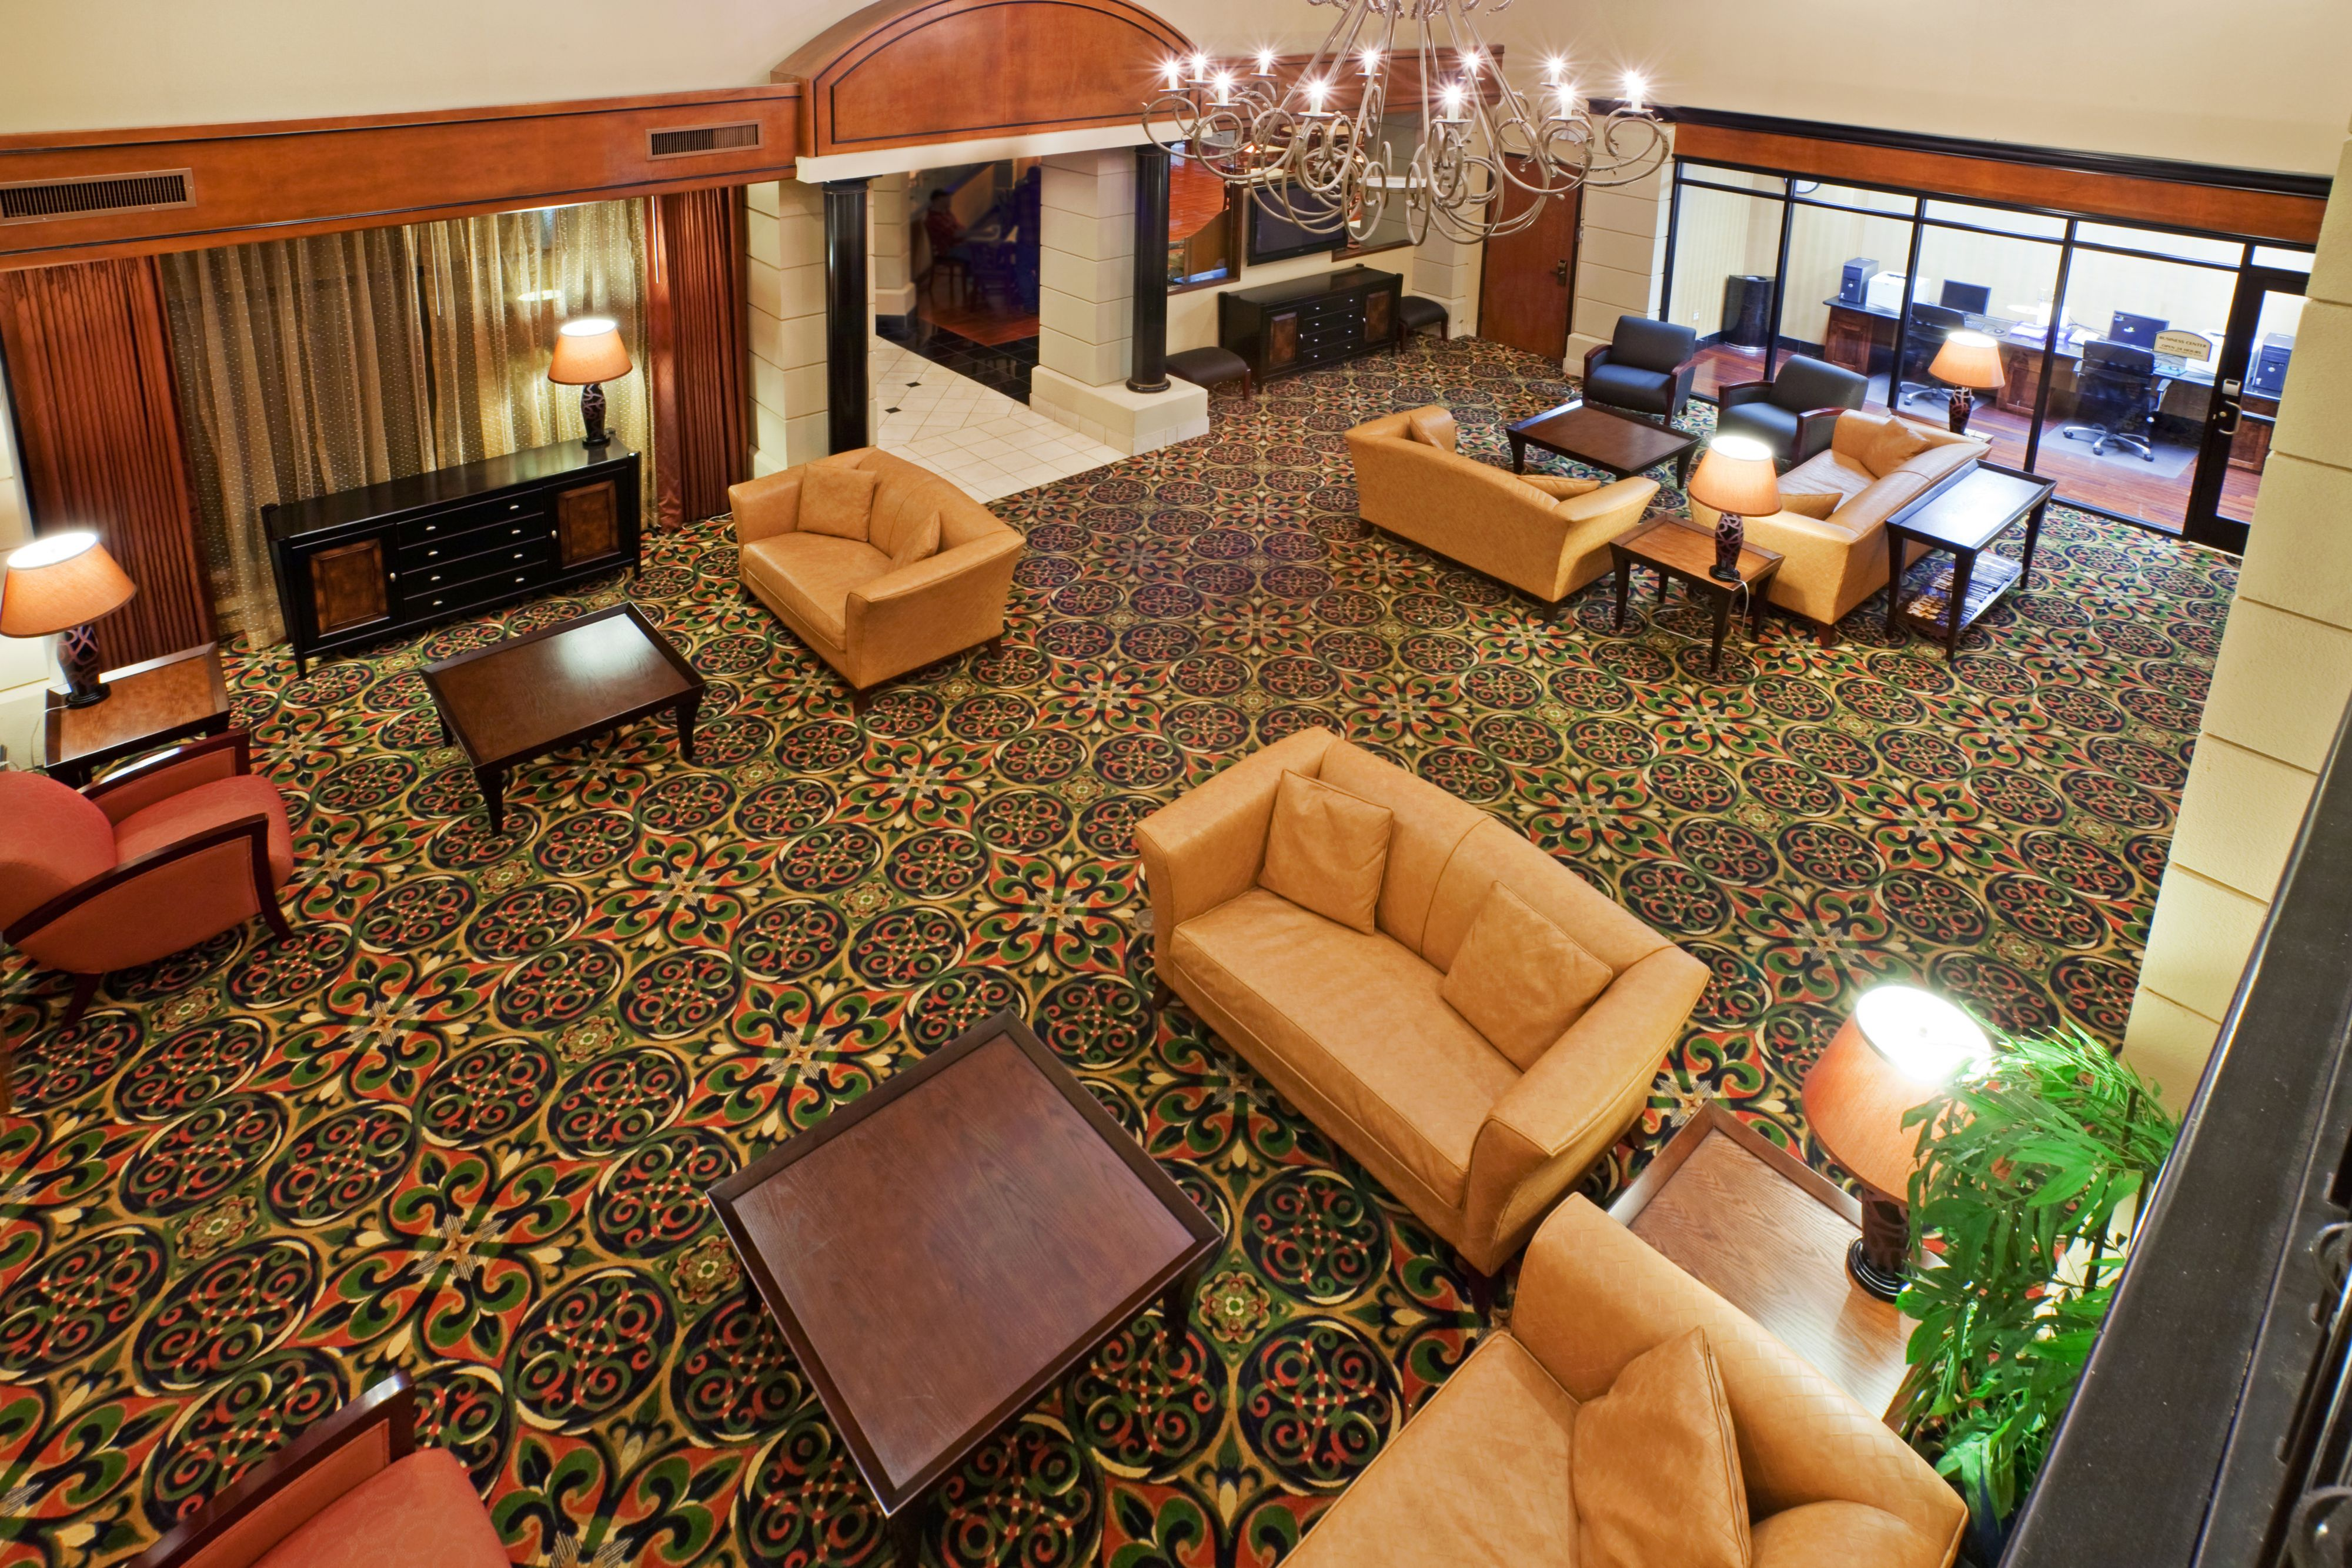 Holiday Inn Express & Suites Irving Dfw Airport North image 6